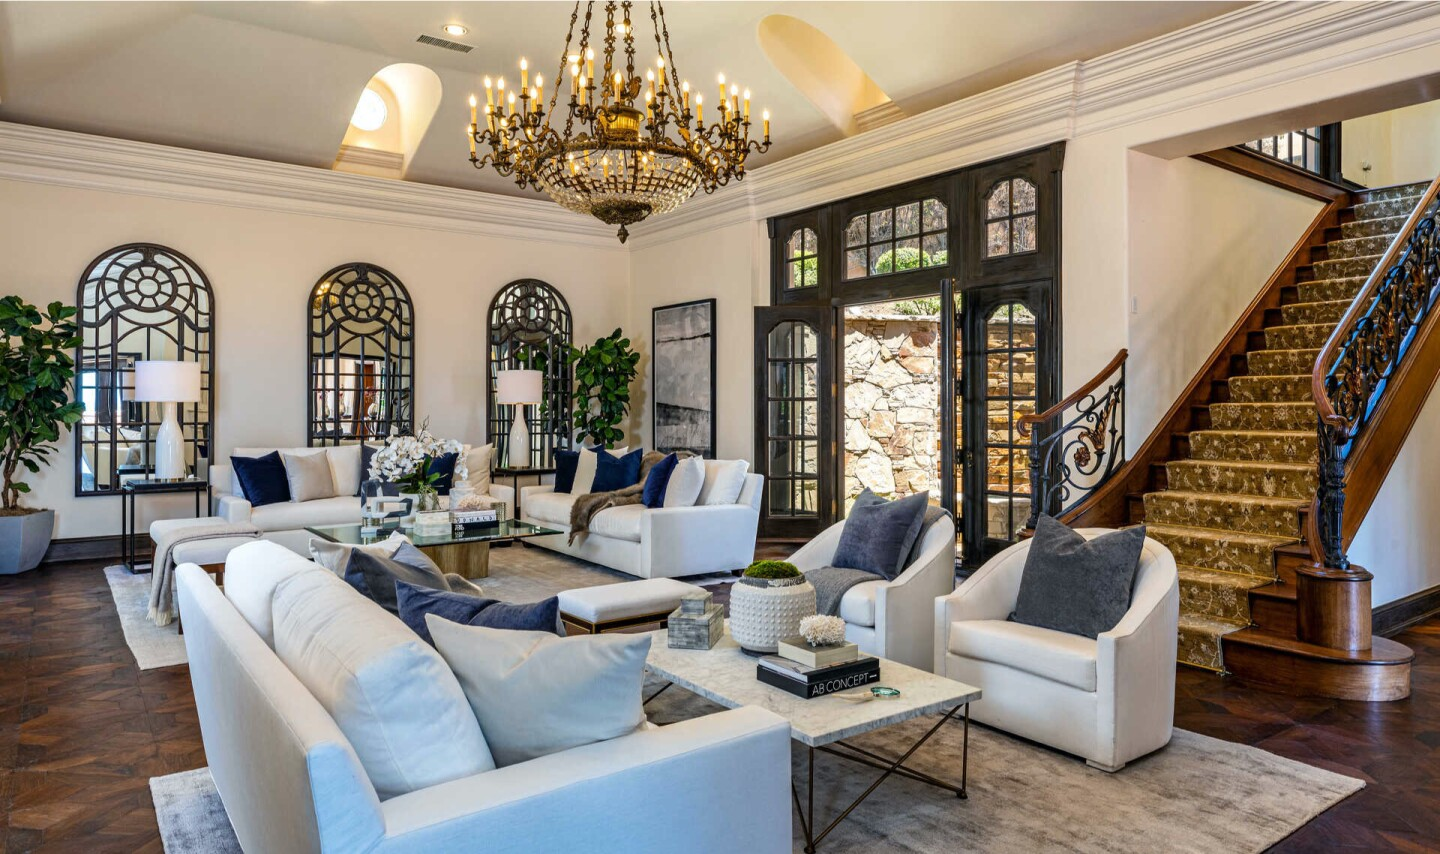 Kelsey and Camille Grammer's former Malibu compound